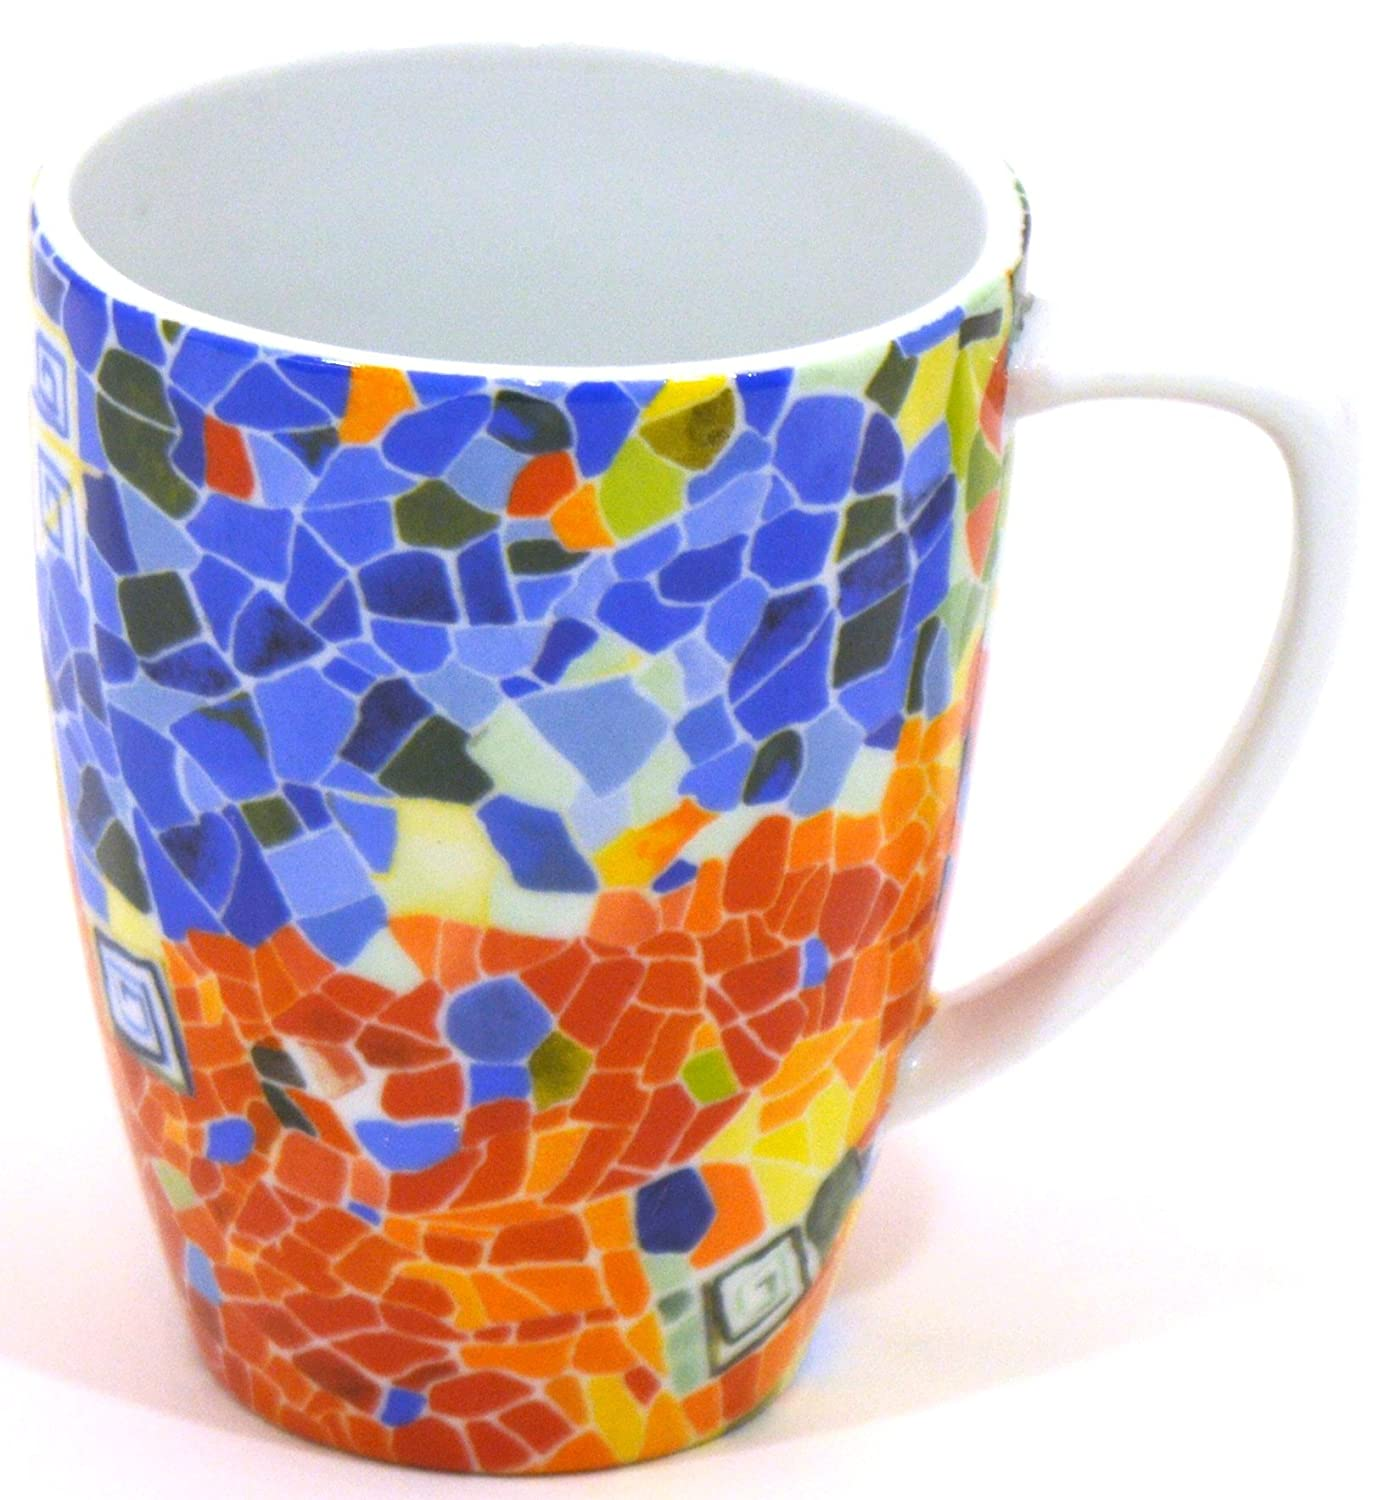 Amazon.com: ART ESCUDELLERS Porcelain Cup with Handle/Mug CONICO Decorated in TRENCADIS Gaudí Style. (Colour Aurora). 4.52 x 4.33 x 3.35: Kitchen & ...